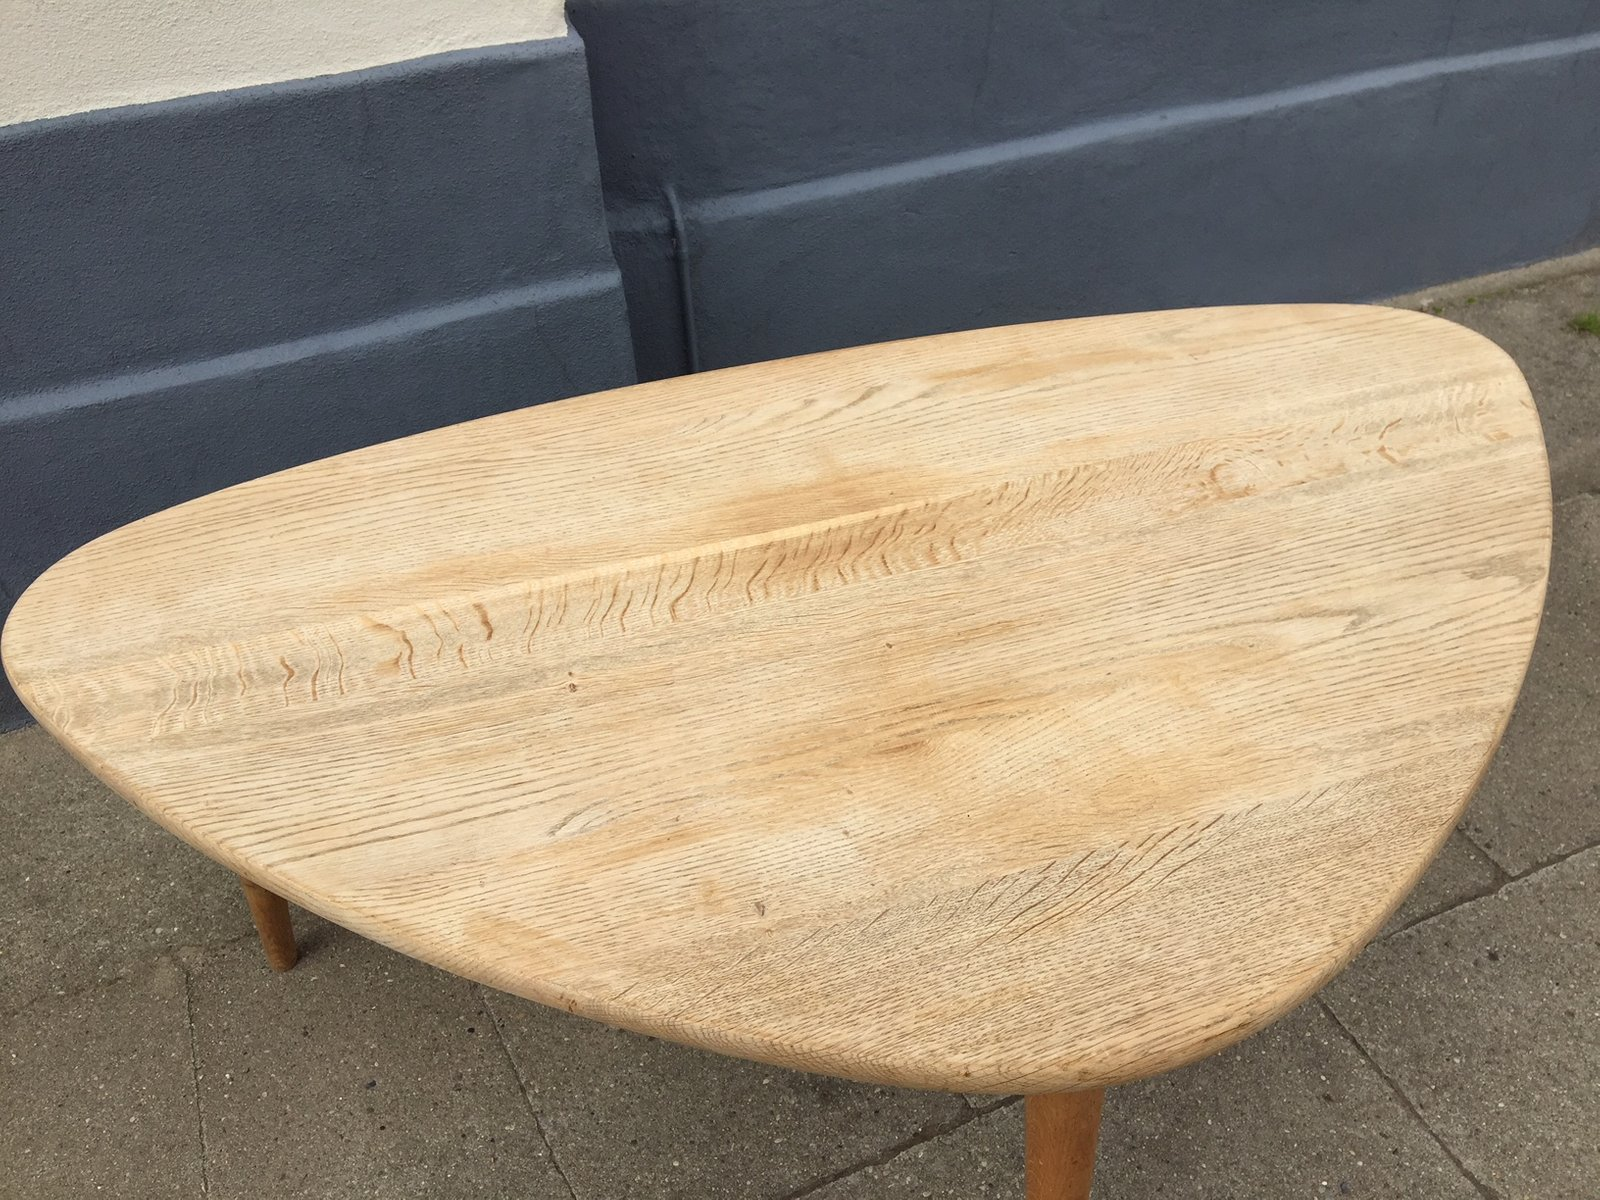 MidCentury Triangular Solid Oak Coffee Table S For Sale At Pamono - Mid century triangle coffee table